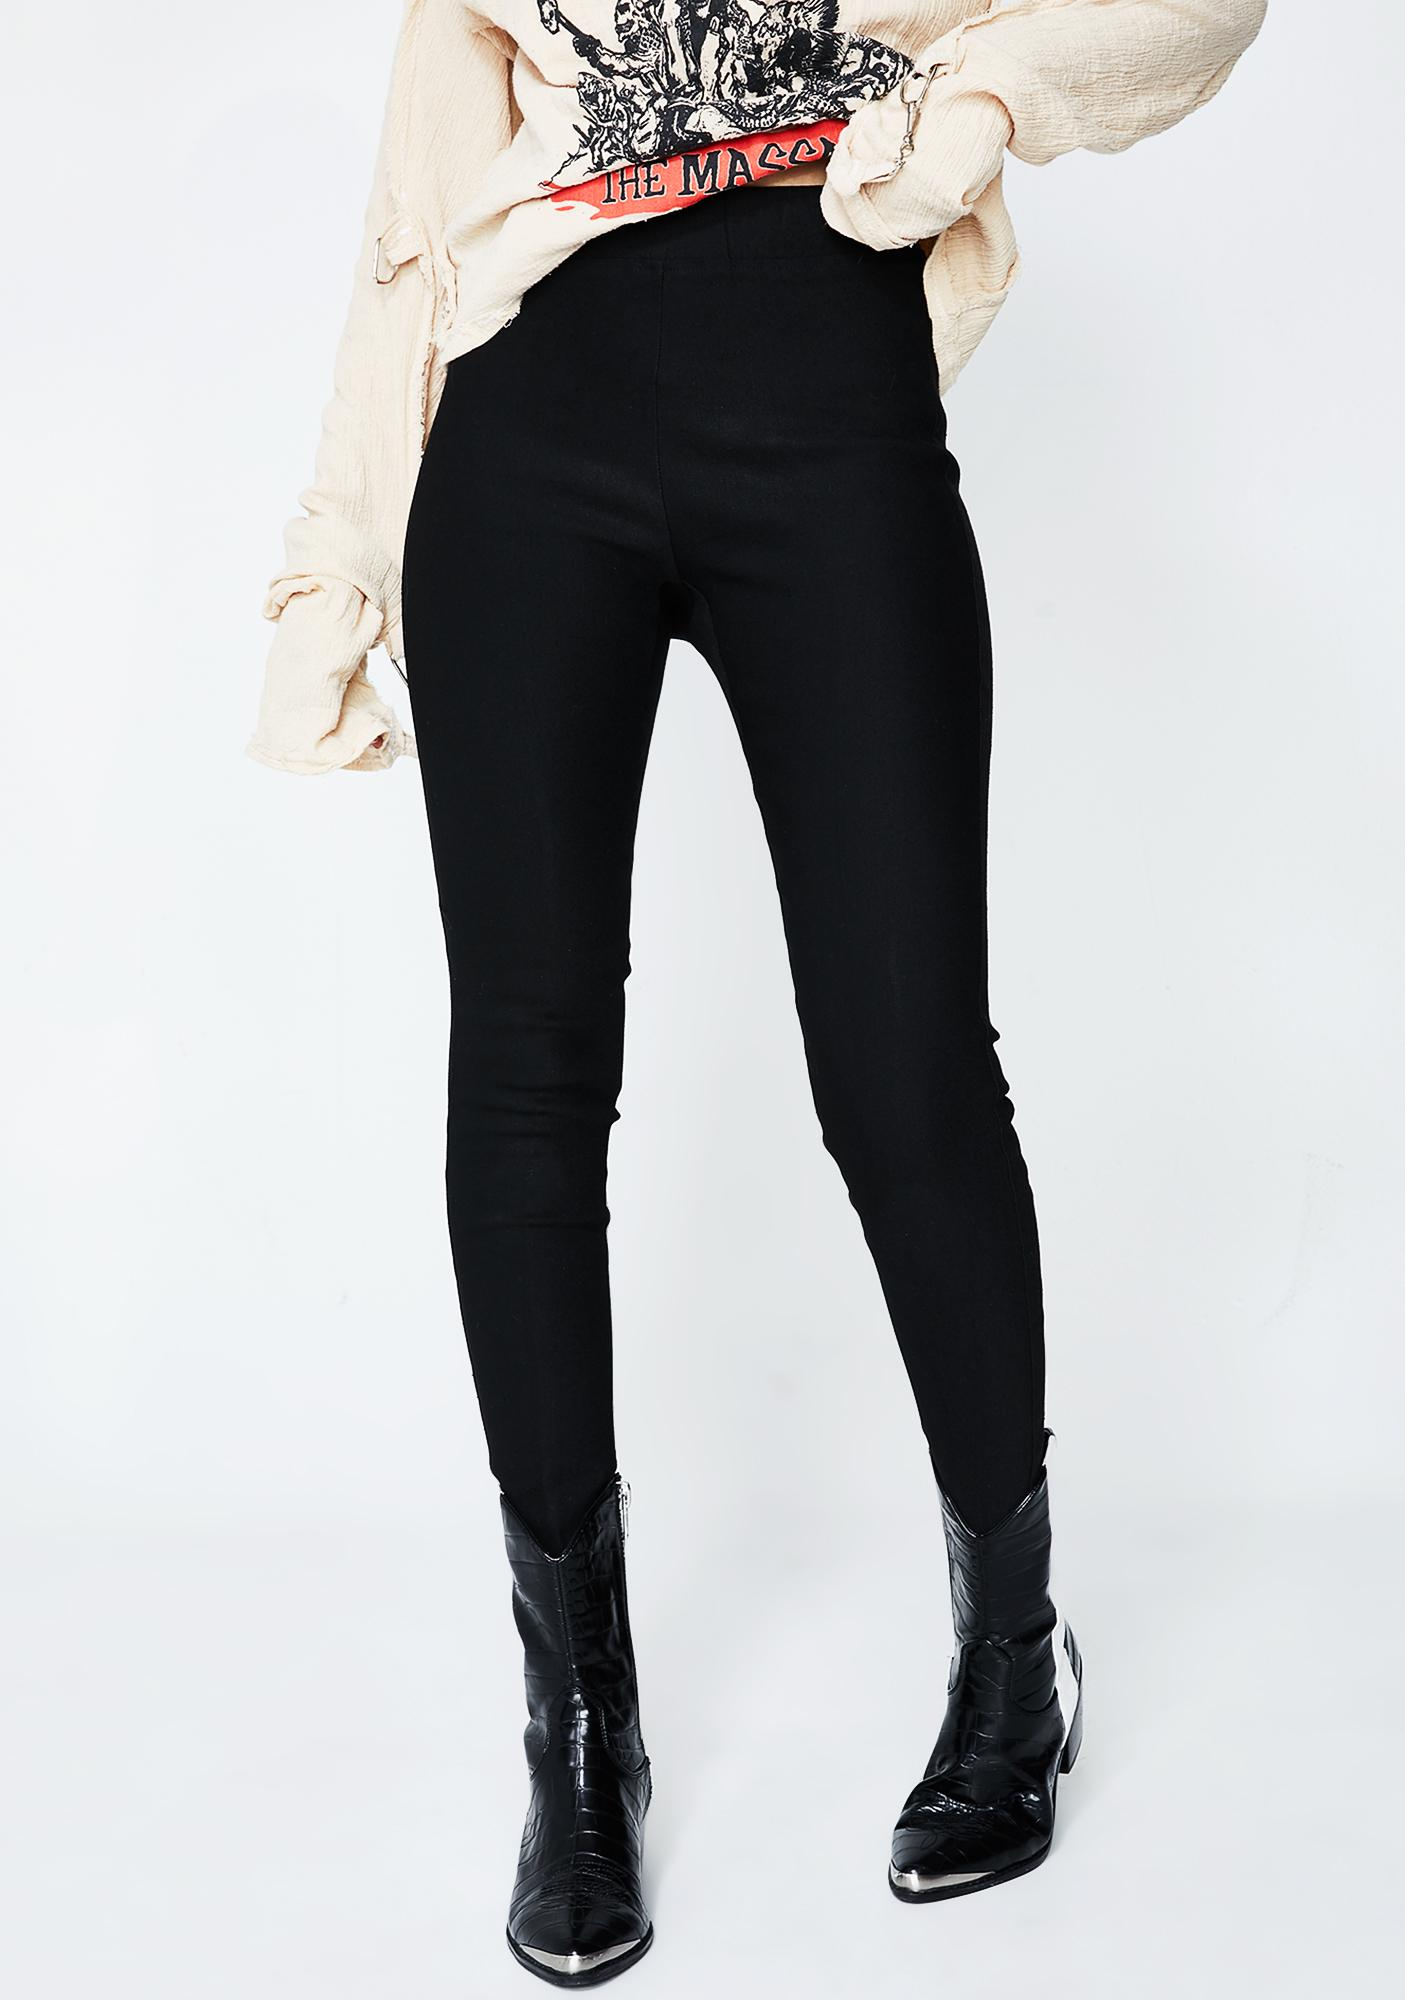 Brand-new Black Stirrup Leggings | Dolls Kill JF27